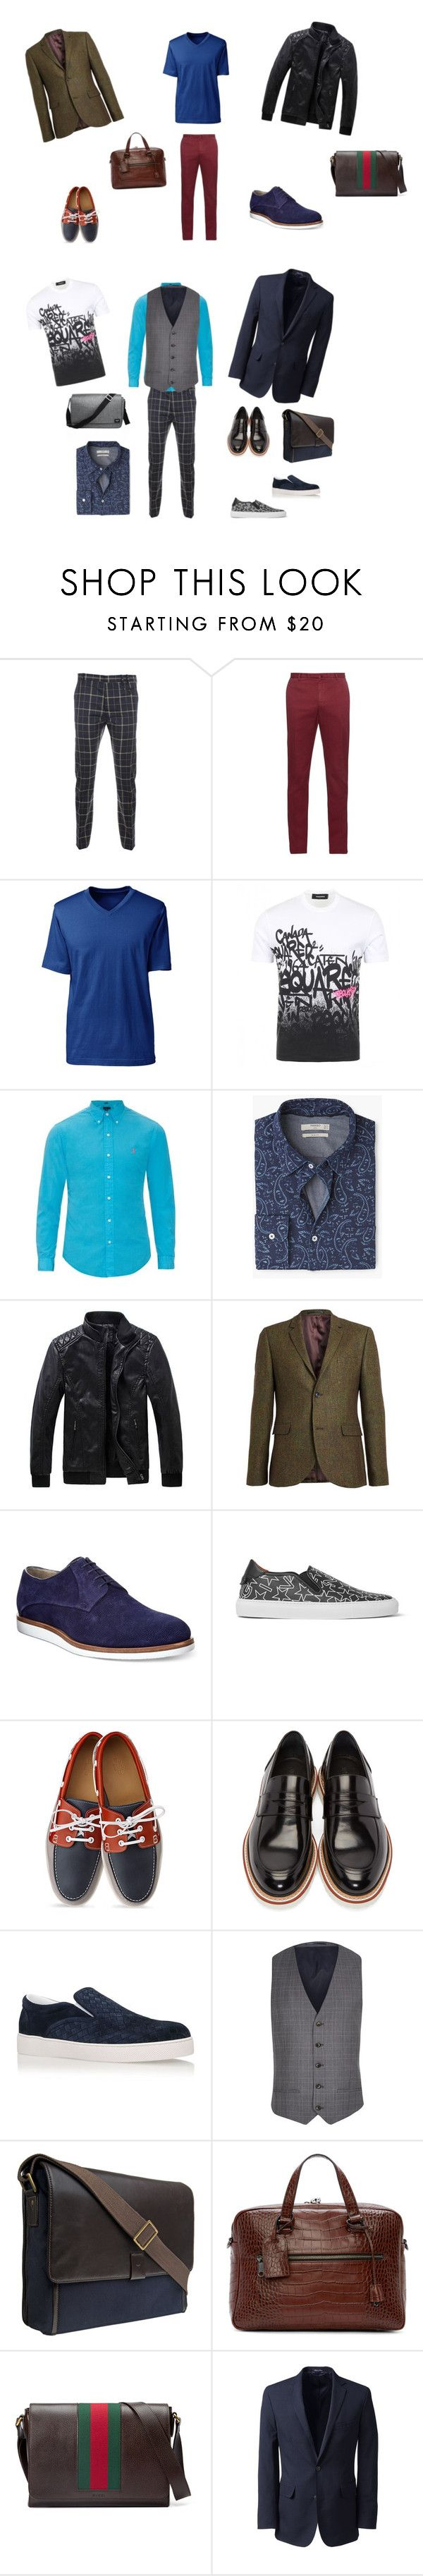 """""""2"""" by madlily86 on Polyvore featuring косметика, Vivienne Westwood Man, Incotex, Lands' End, Dsquared2, Polo Ralph Lauren, MANGO, Topman, HUGO и Givenchy"""